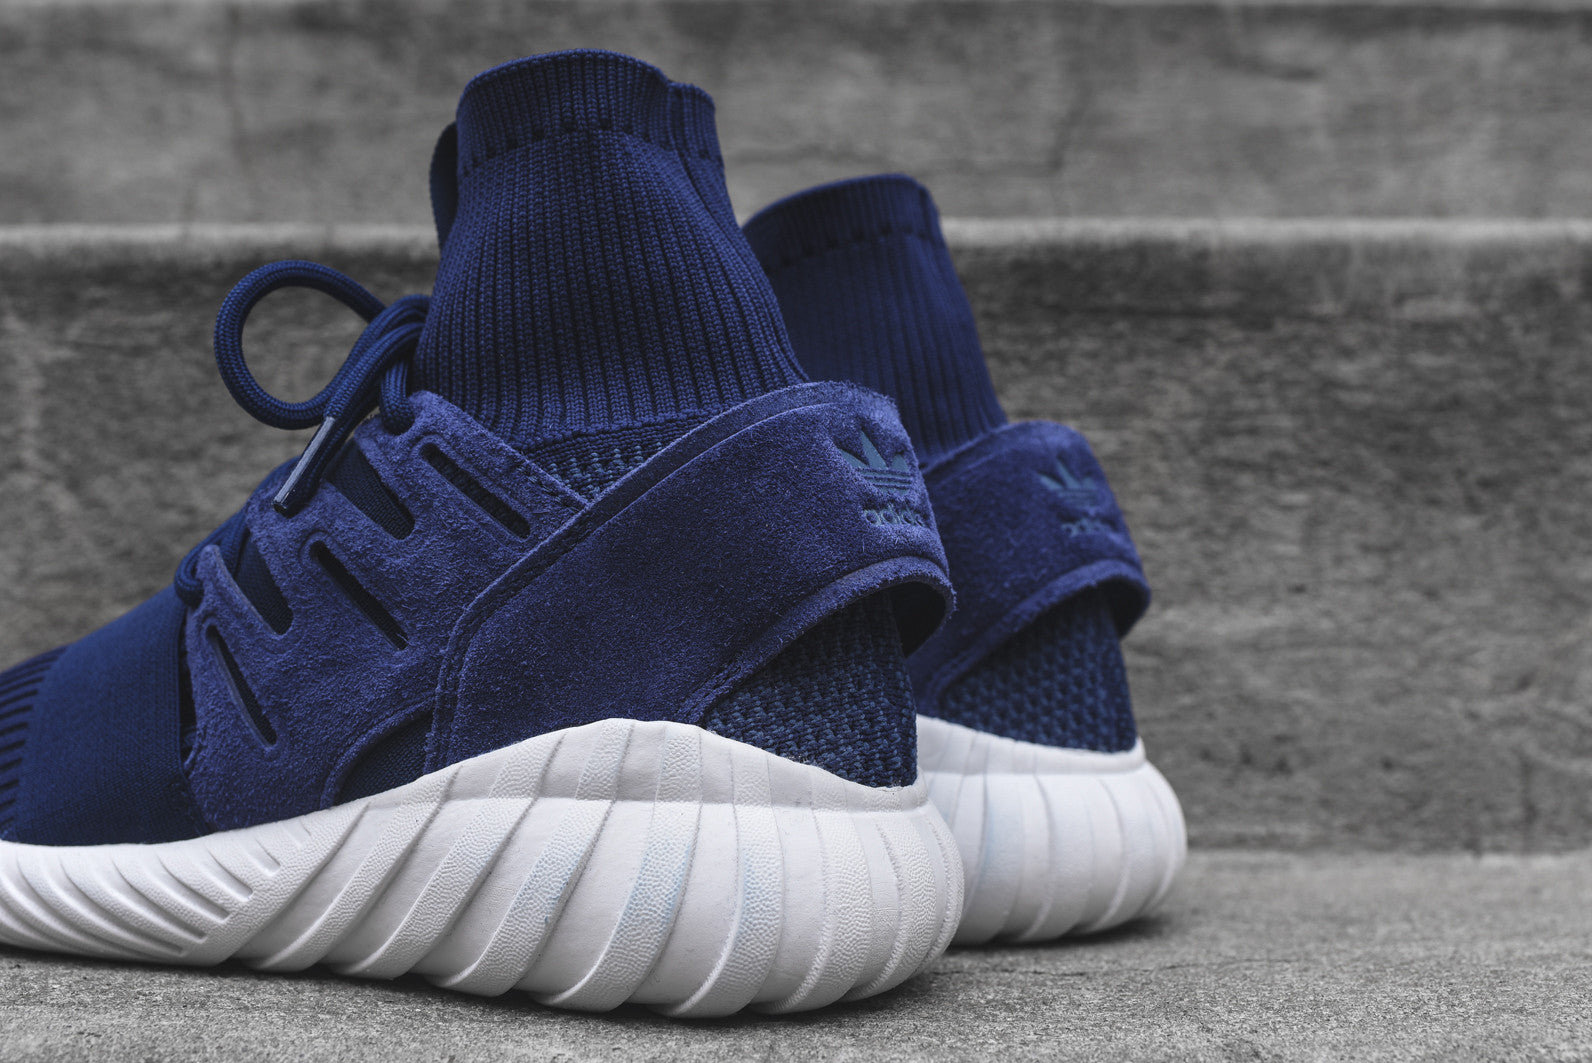 adidas Originals Tubular Doom PK - Night Marine / White